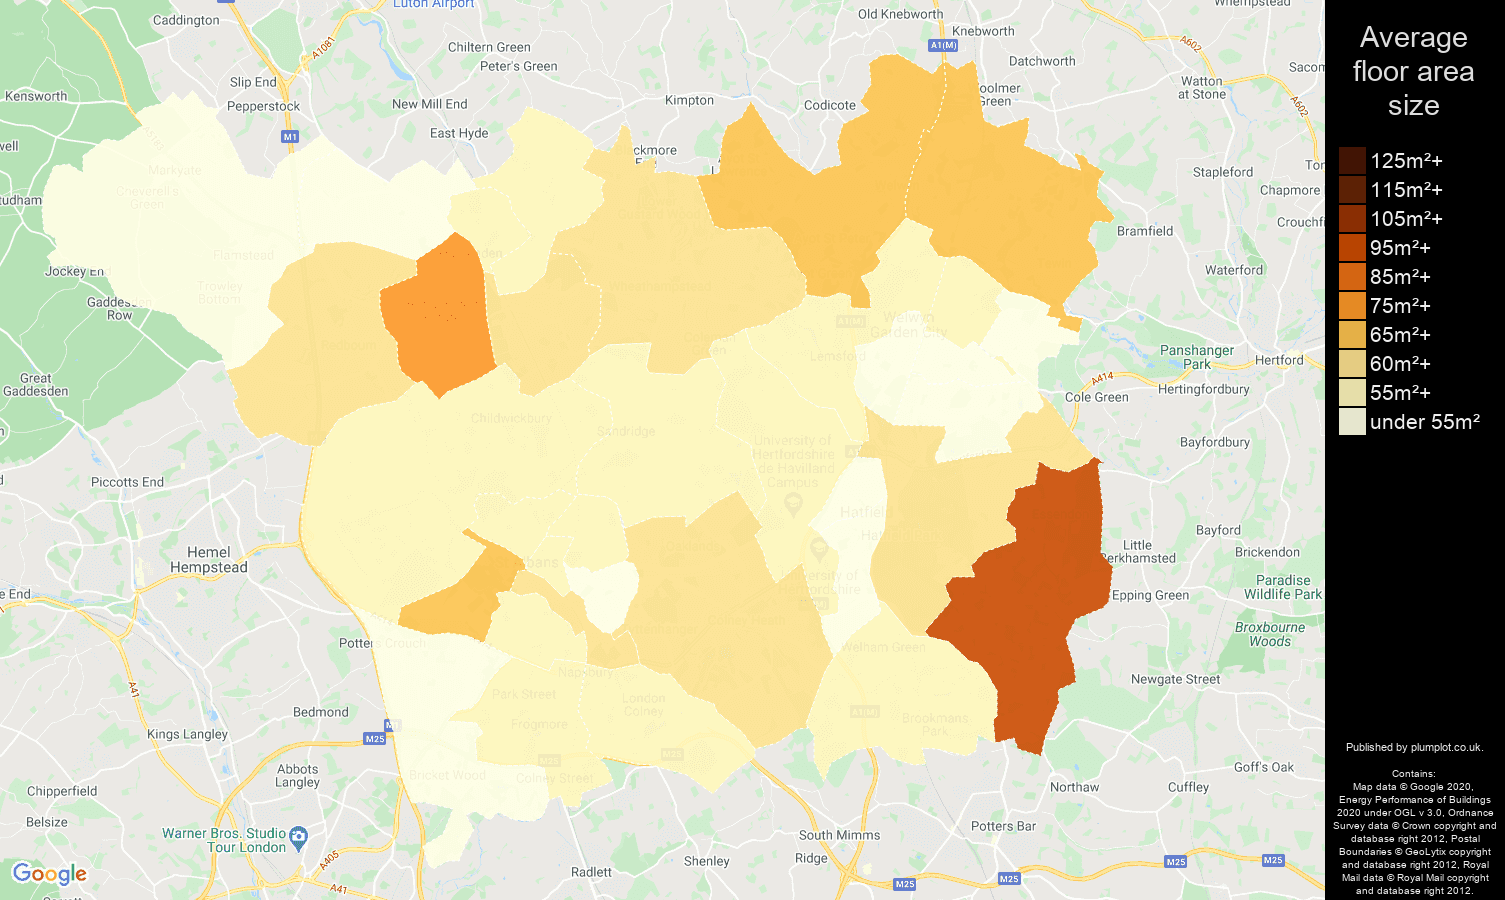 St Albans map of average floor area size of flats